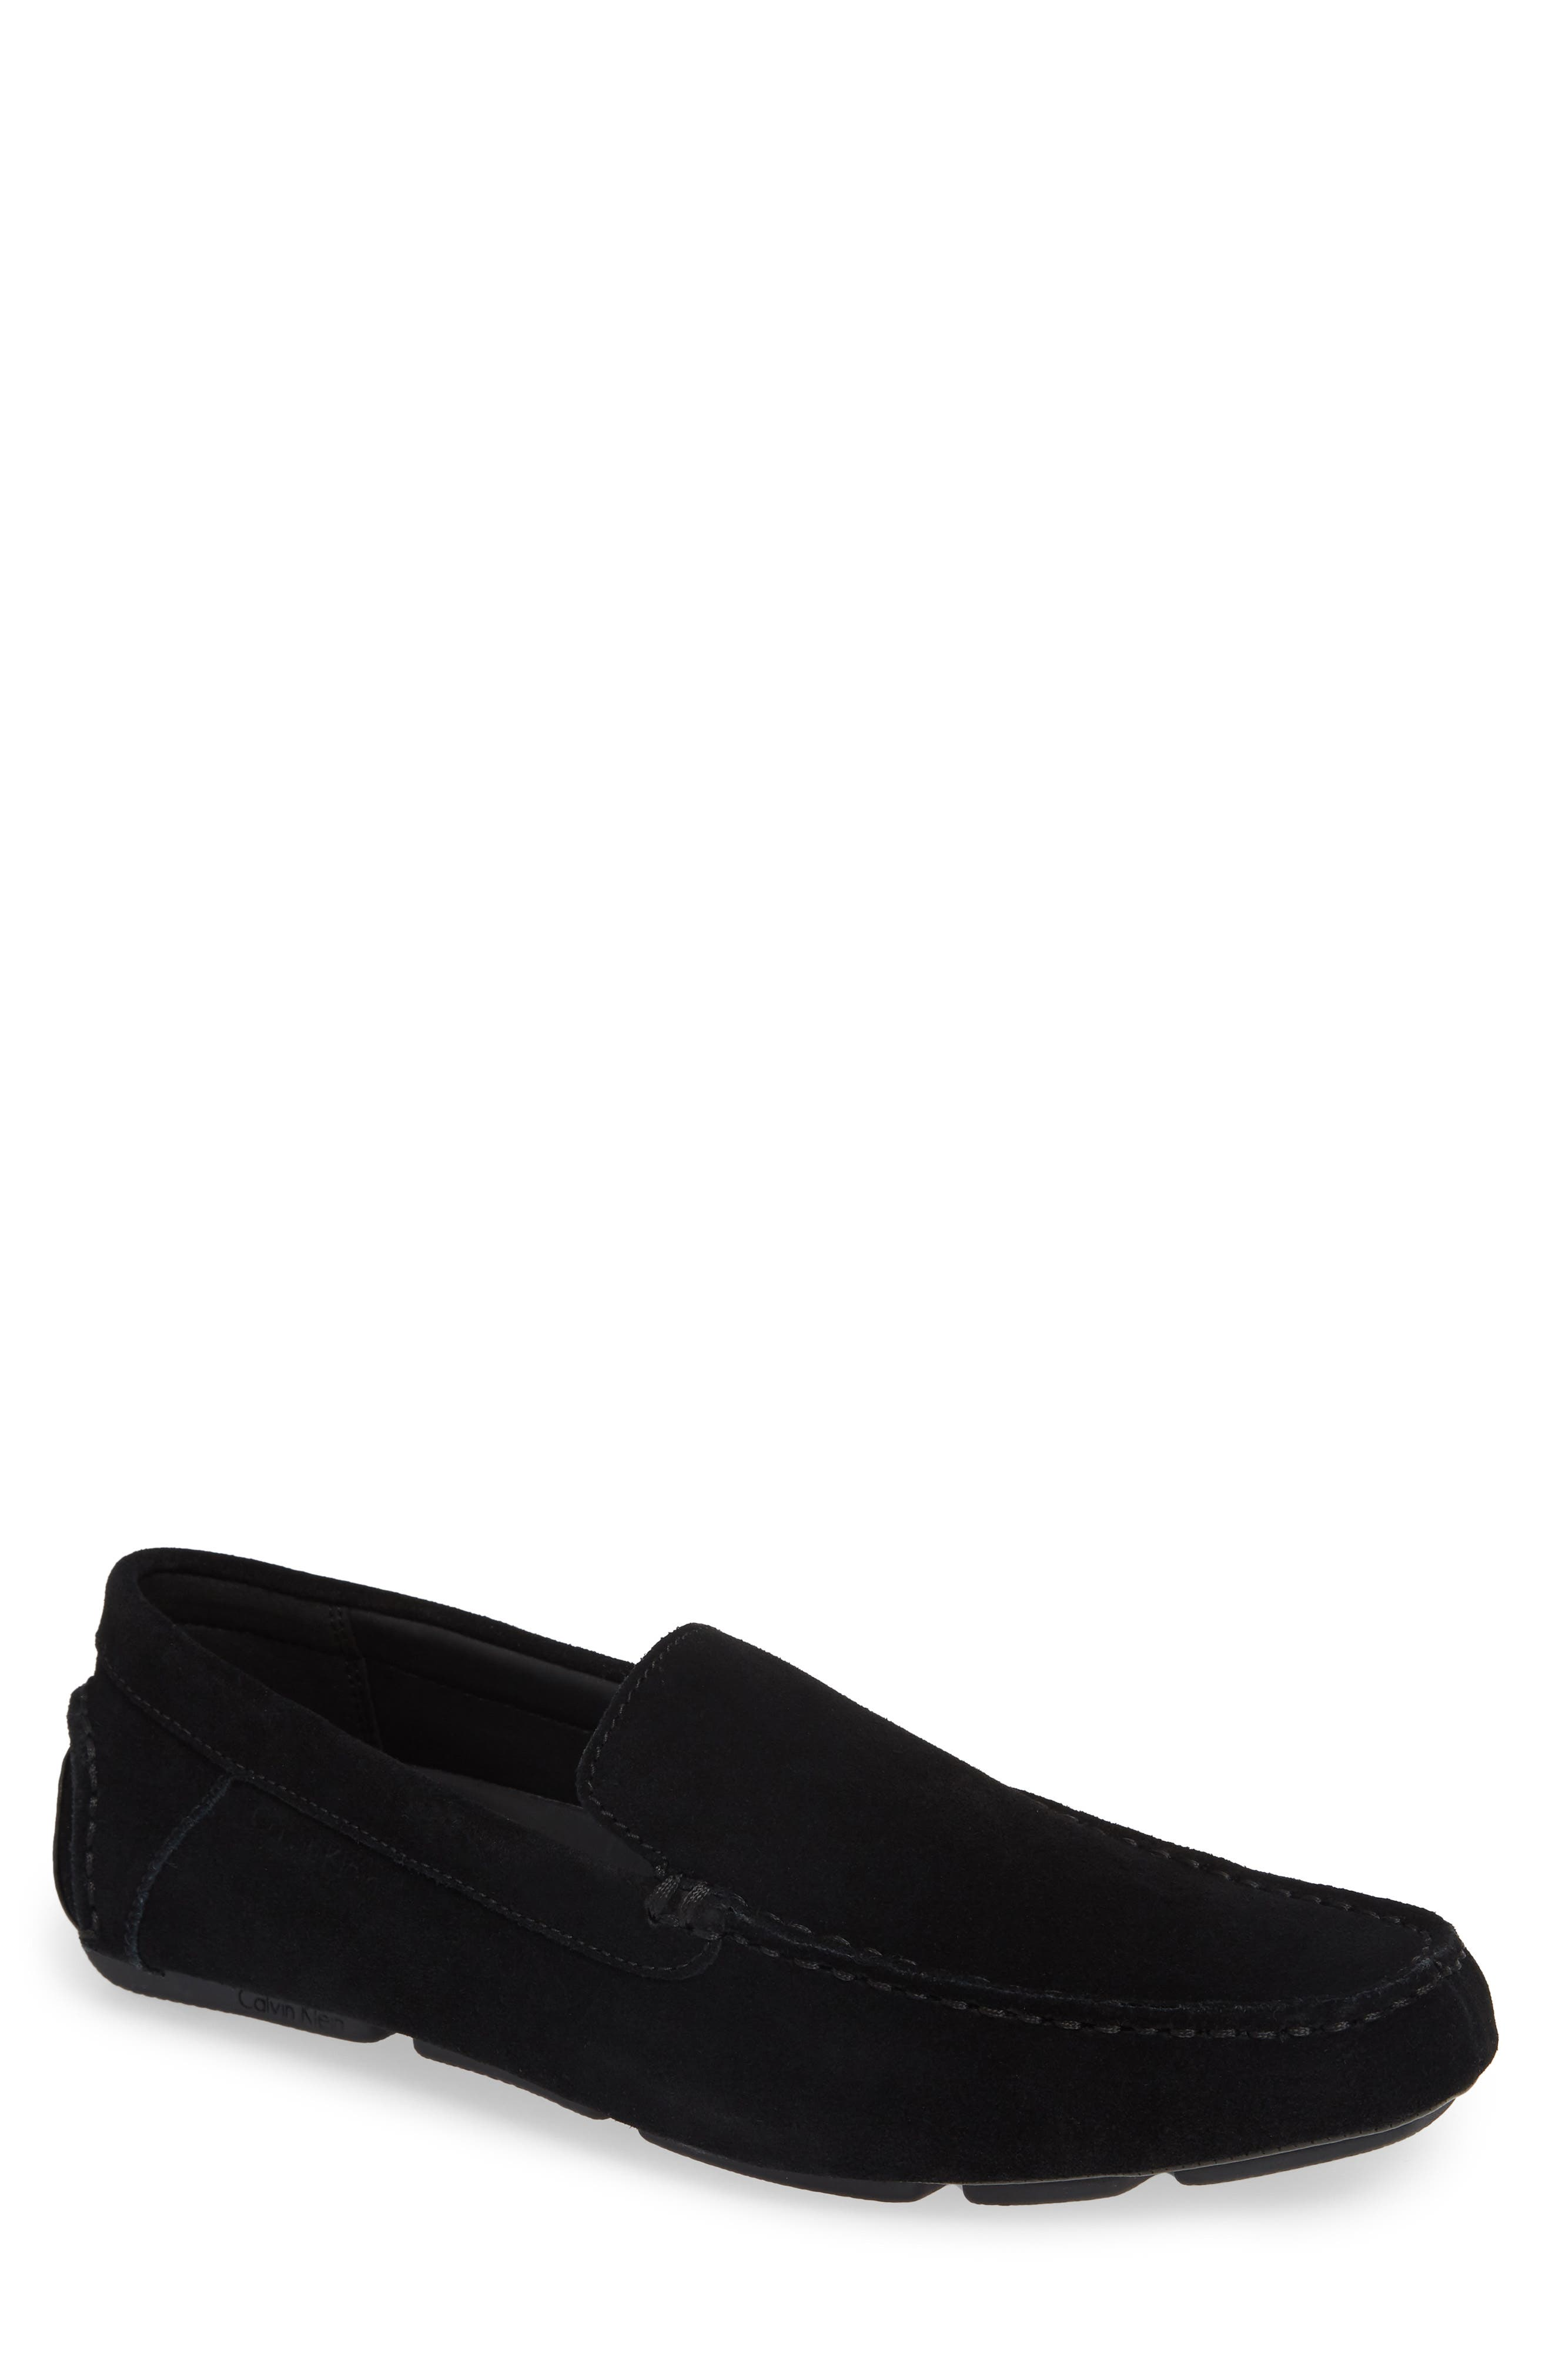 Miguel Textured Driving Loafer,                         Main,                         color, BLACK CALF SUEDE